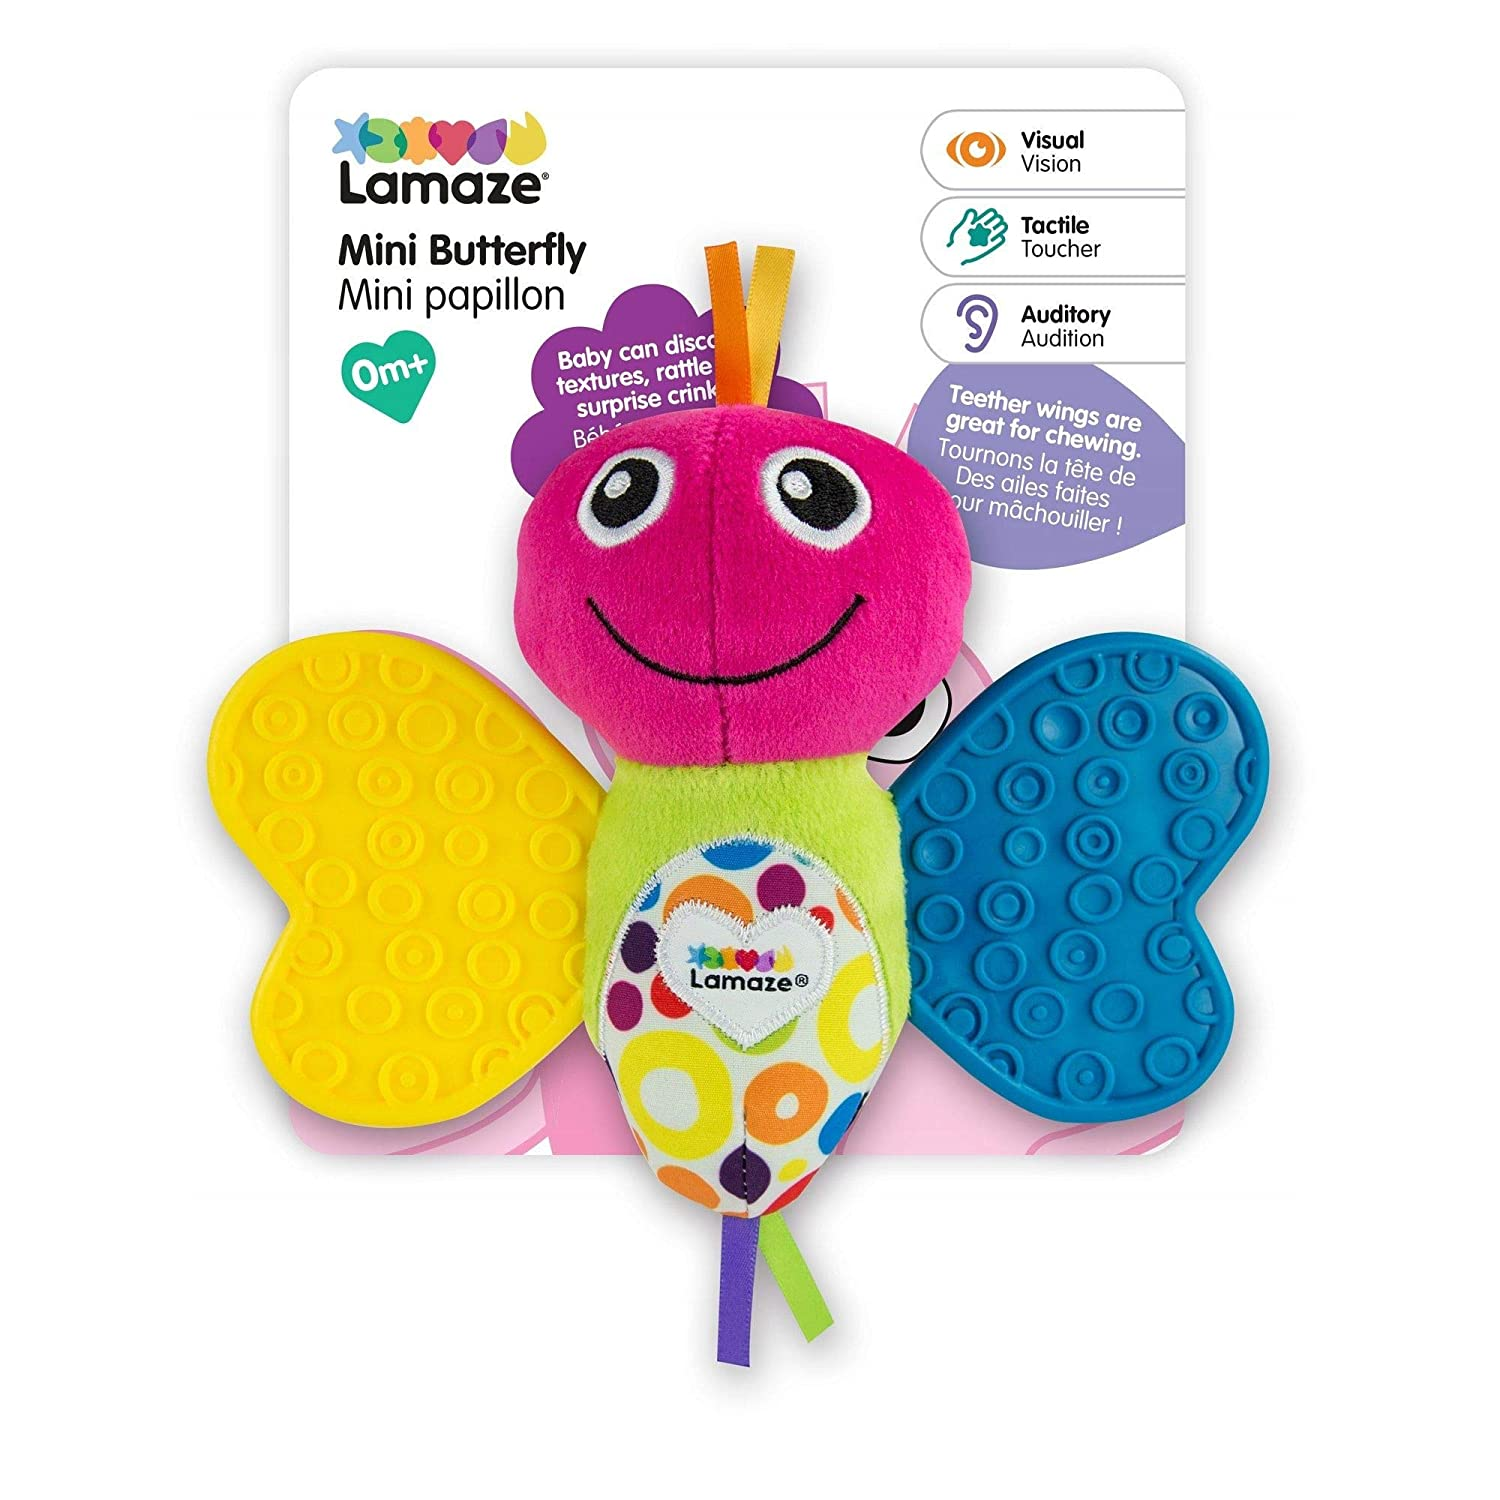 Mini Butterfly Lamaze